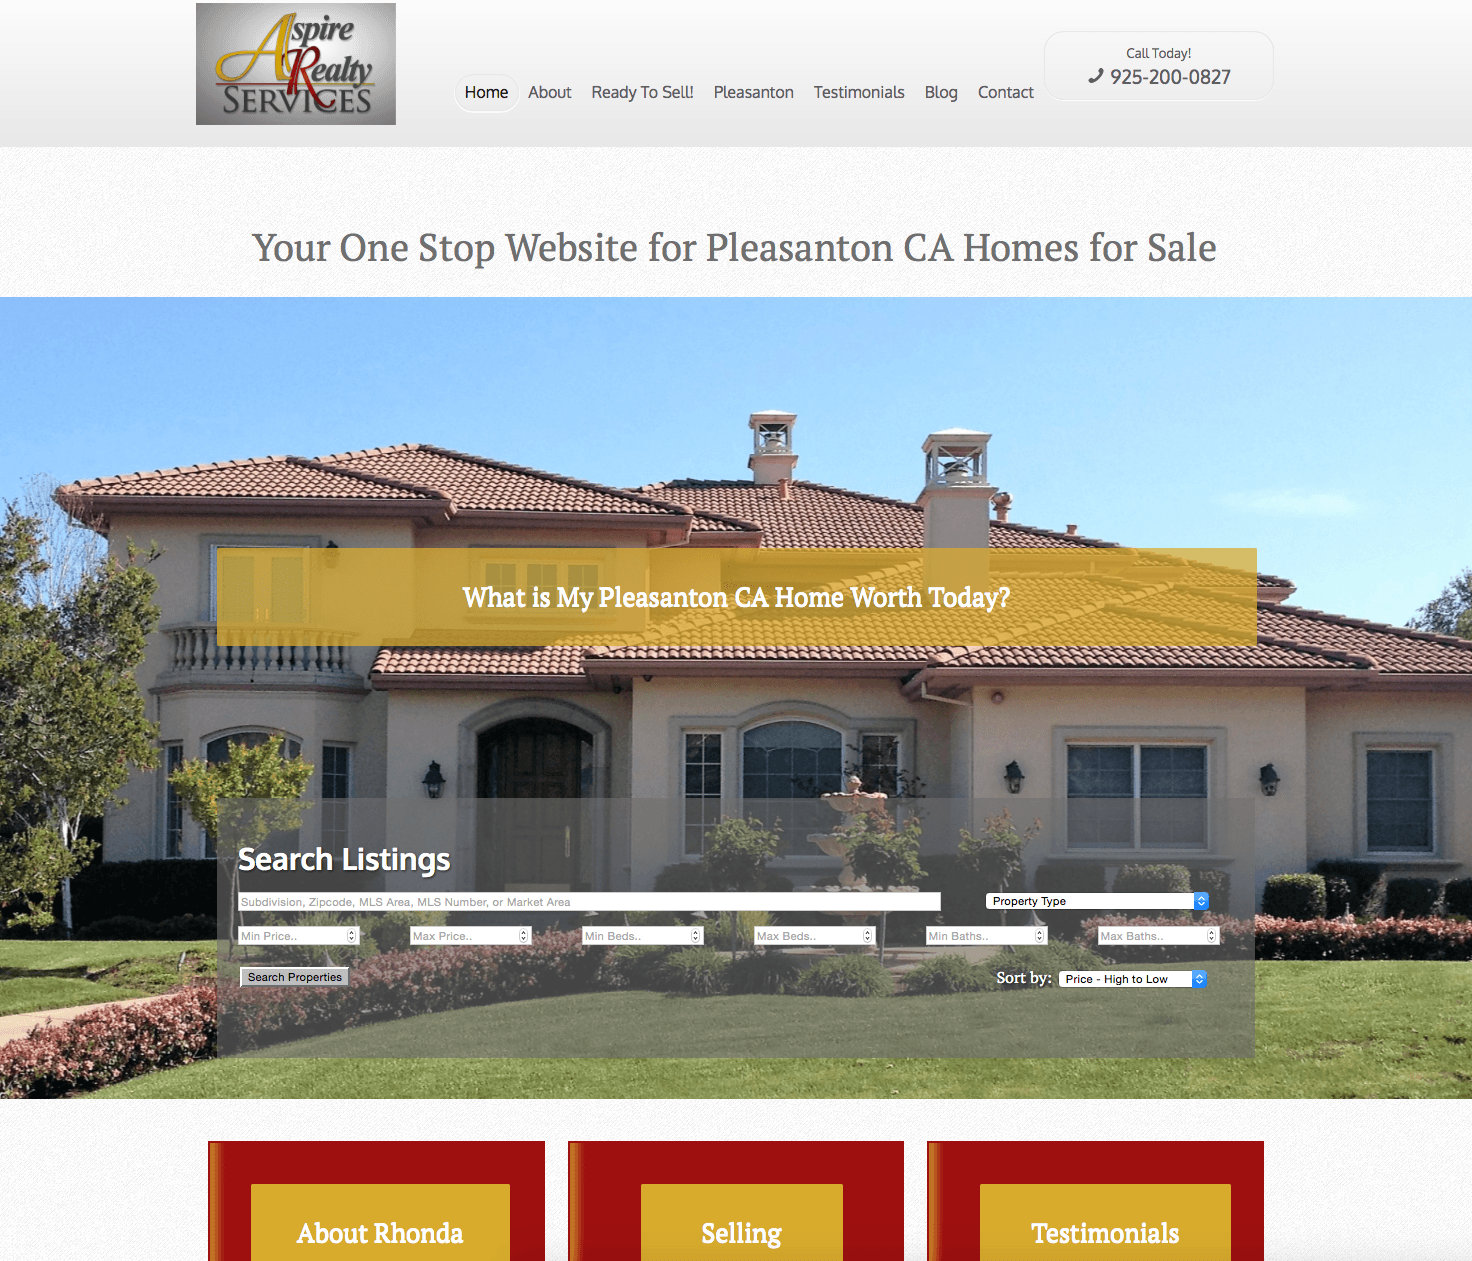 Pleasanton_Homes_For_Sale_-_925_200_0827_-_Rhonda_Fee